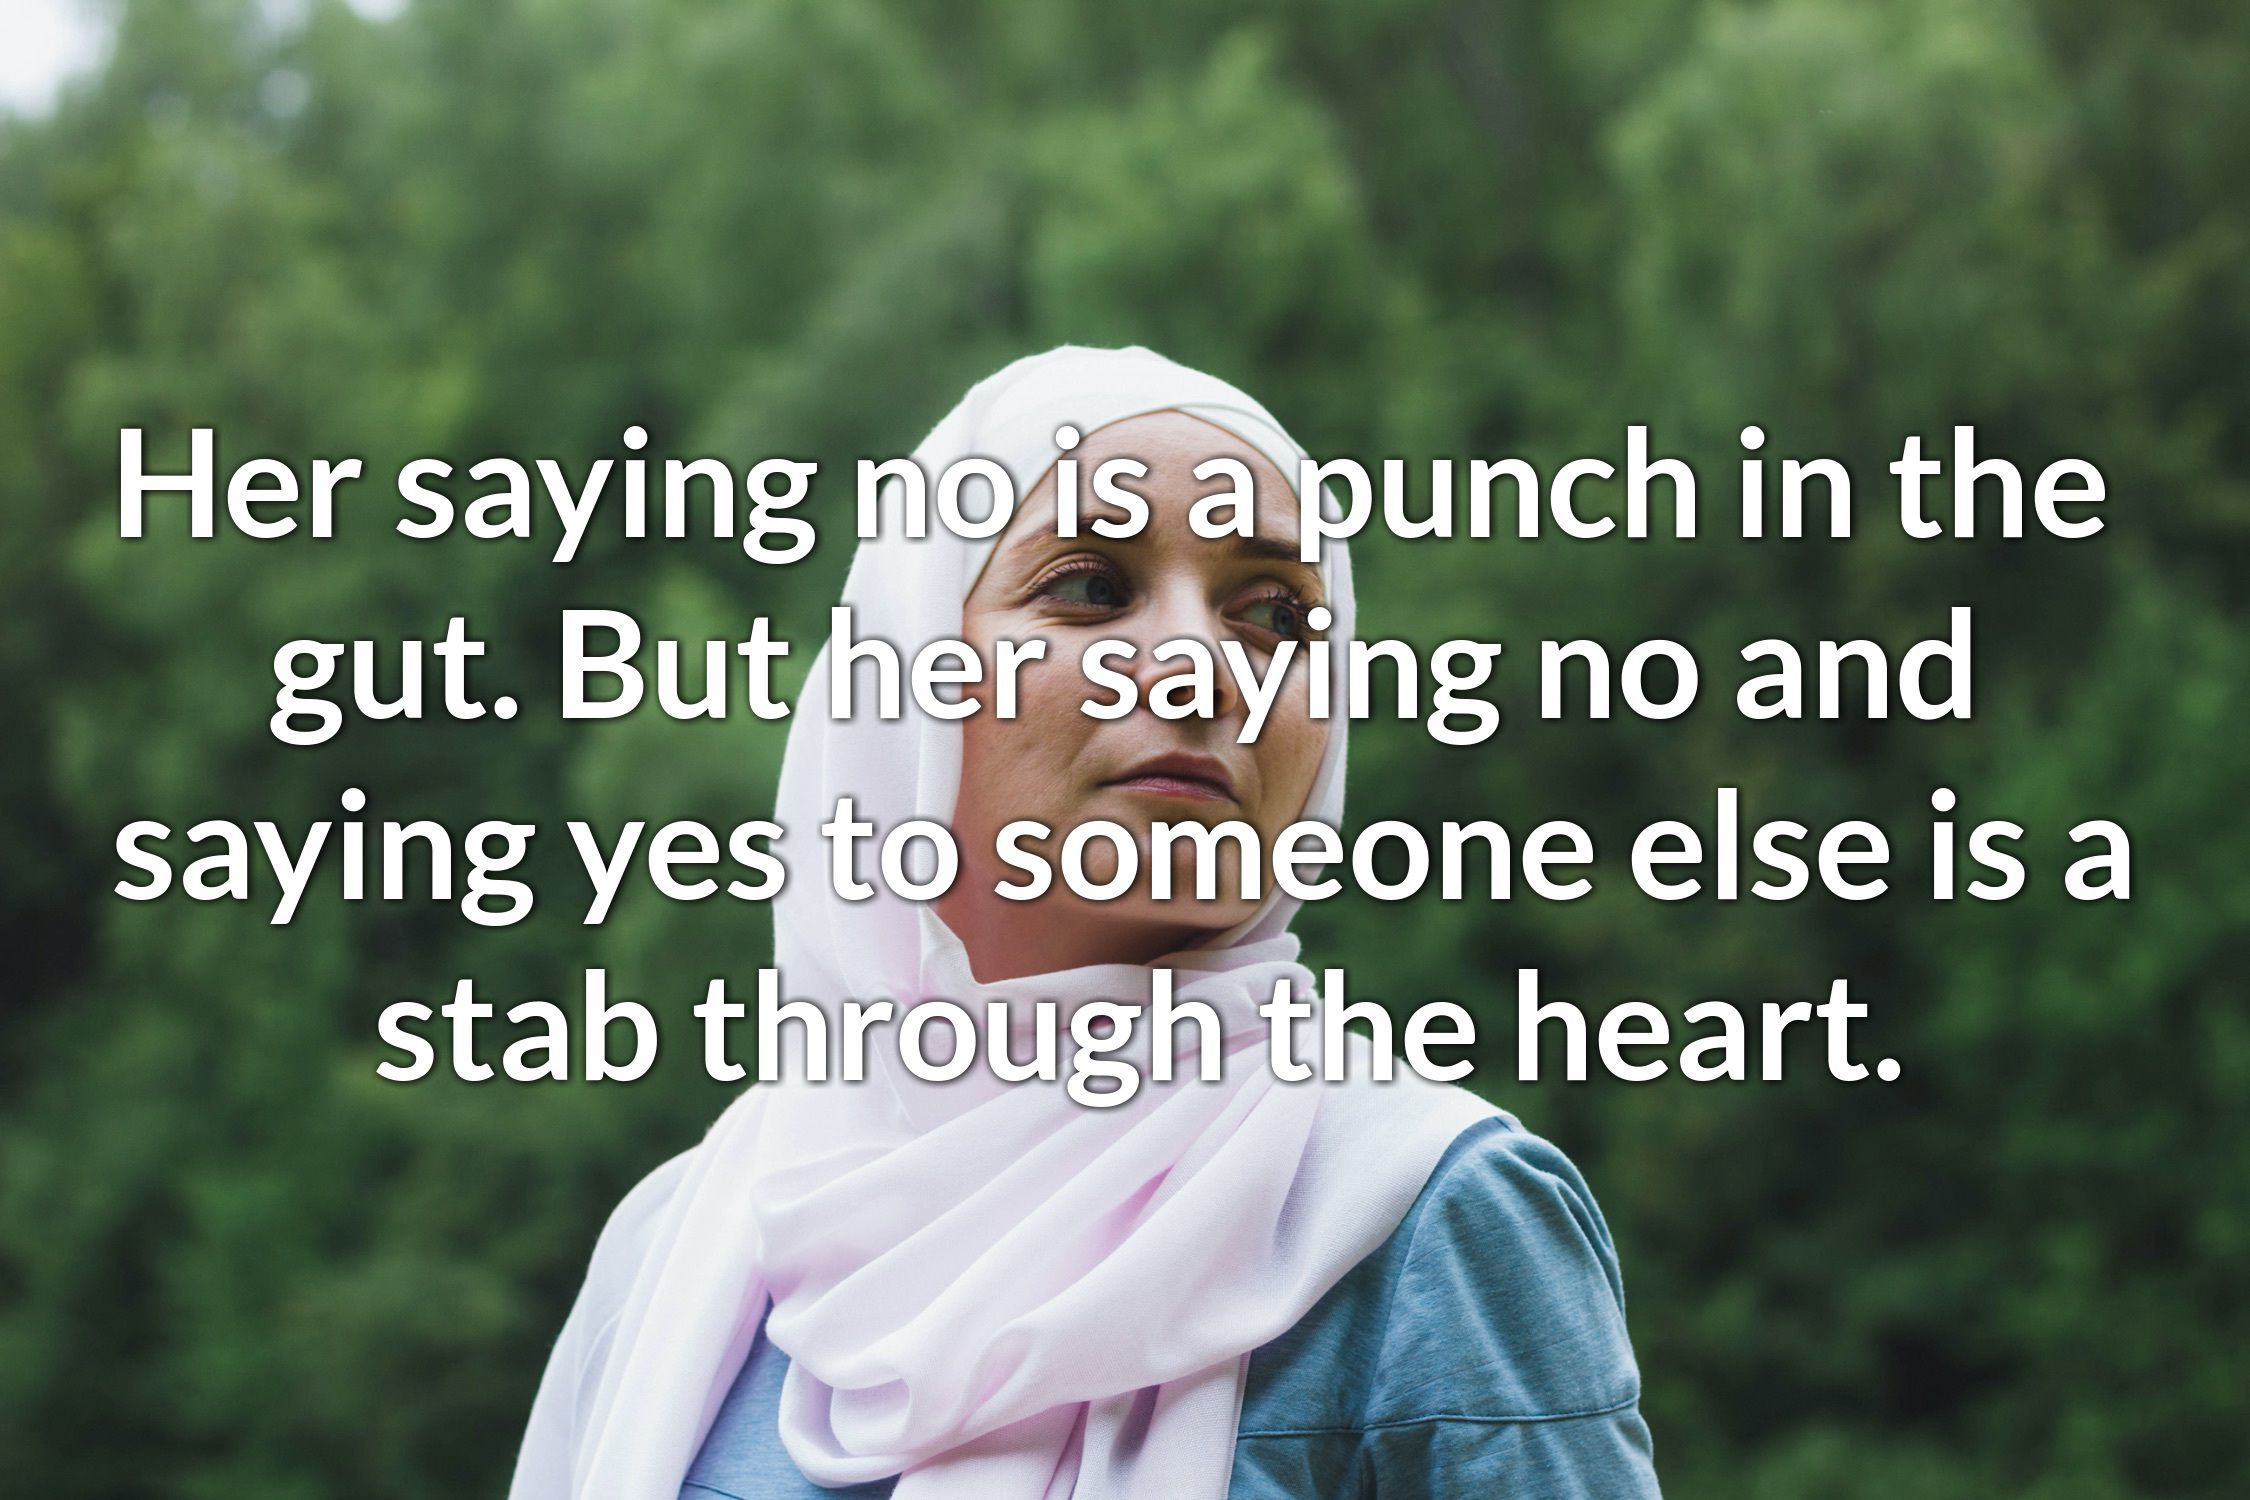 Her Saying No Is A Punch In The Gut But Her Saying No And Saying Yes To Someone Else Is A Stab Through The Heart Http One Sided Love True Feelings Love